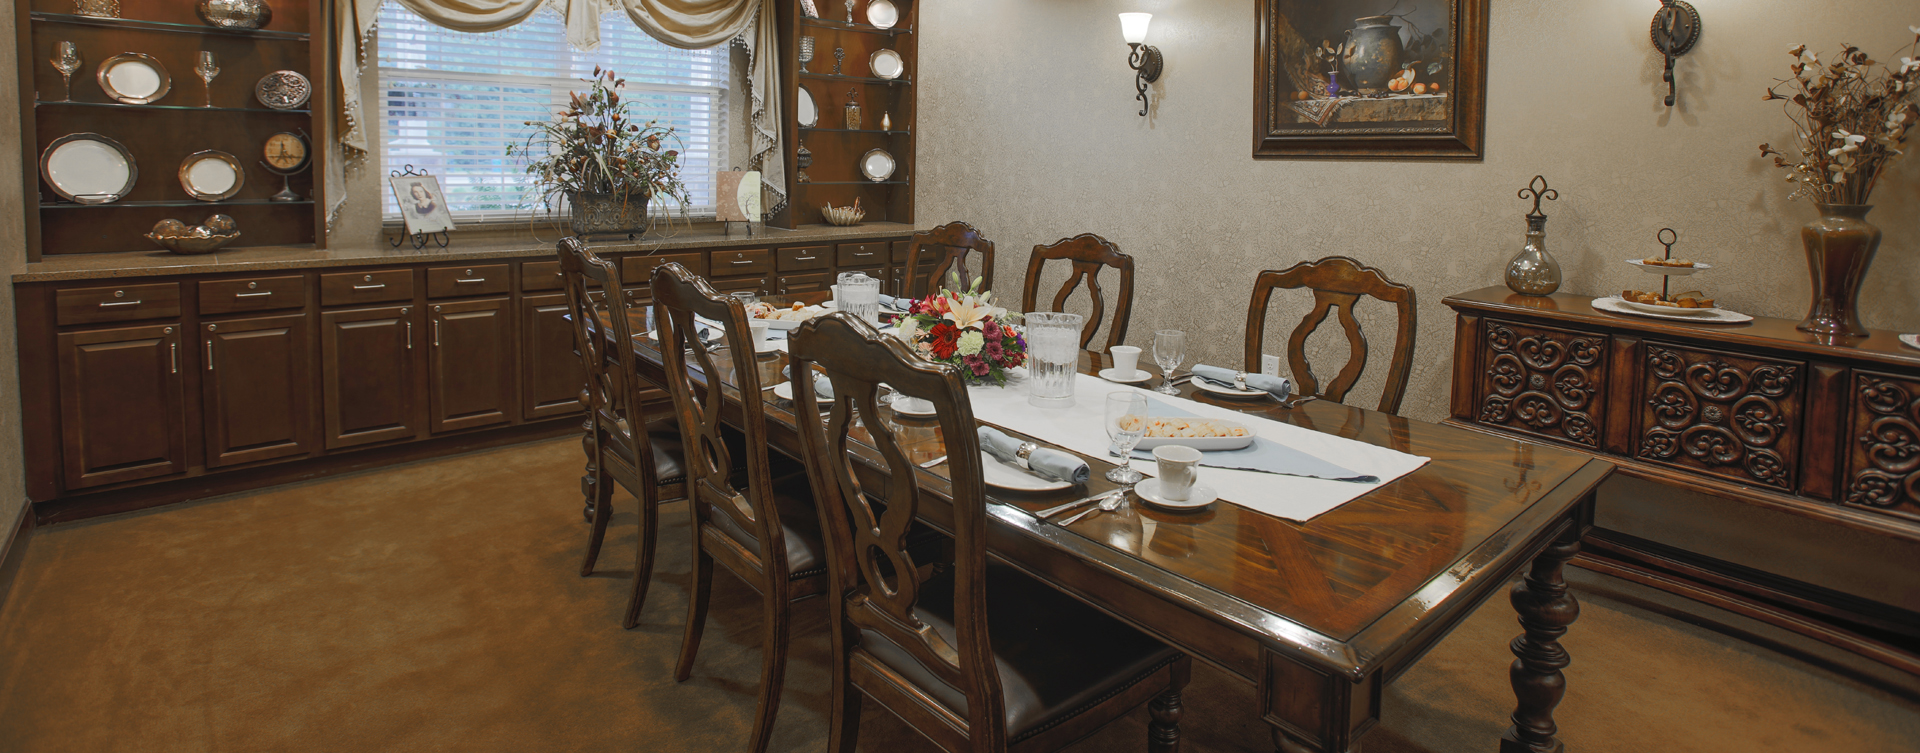 Food is best when shared with family and friends in the private dining room at Bickford of Carmel